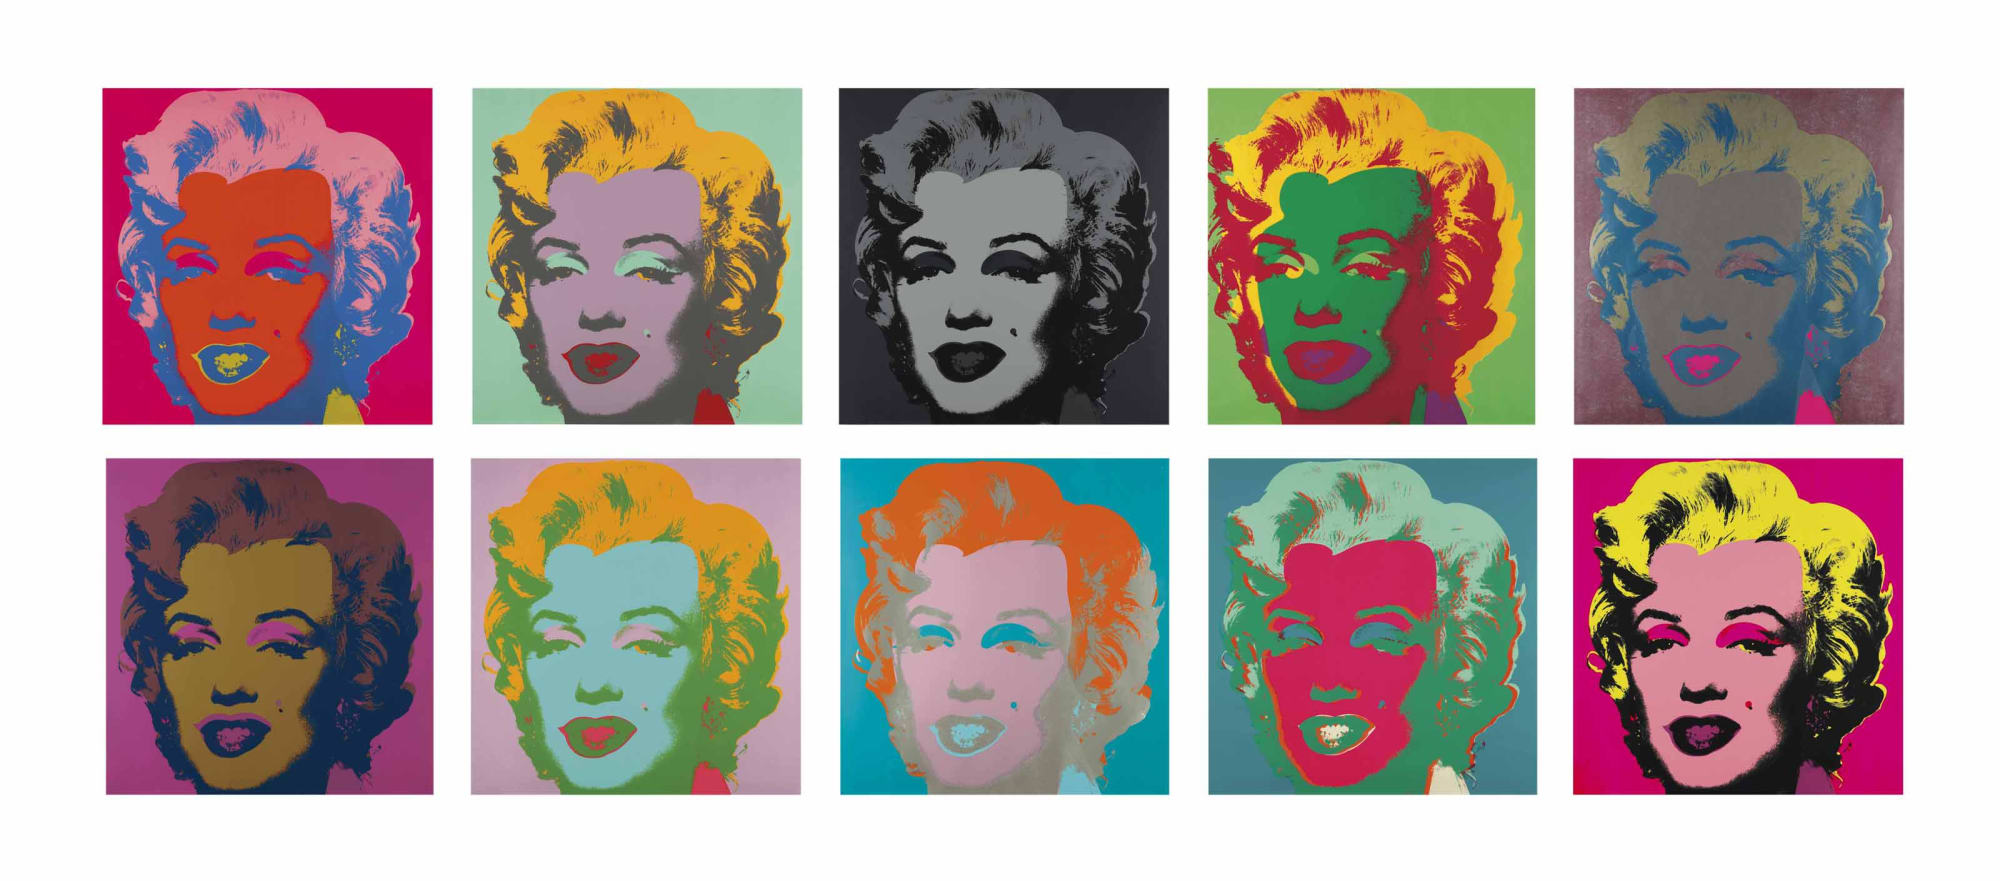 Marilyn Monroe, Marilyn, 1967 by Andy Warhol, Portfolio of ten screenprints from an edition of 300, at Coskun Fine Art